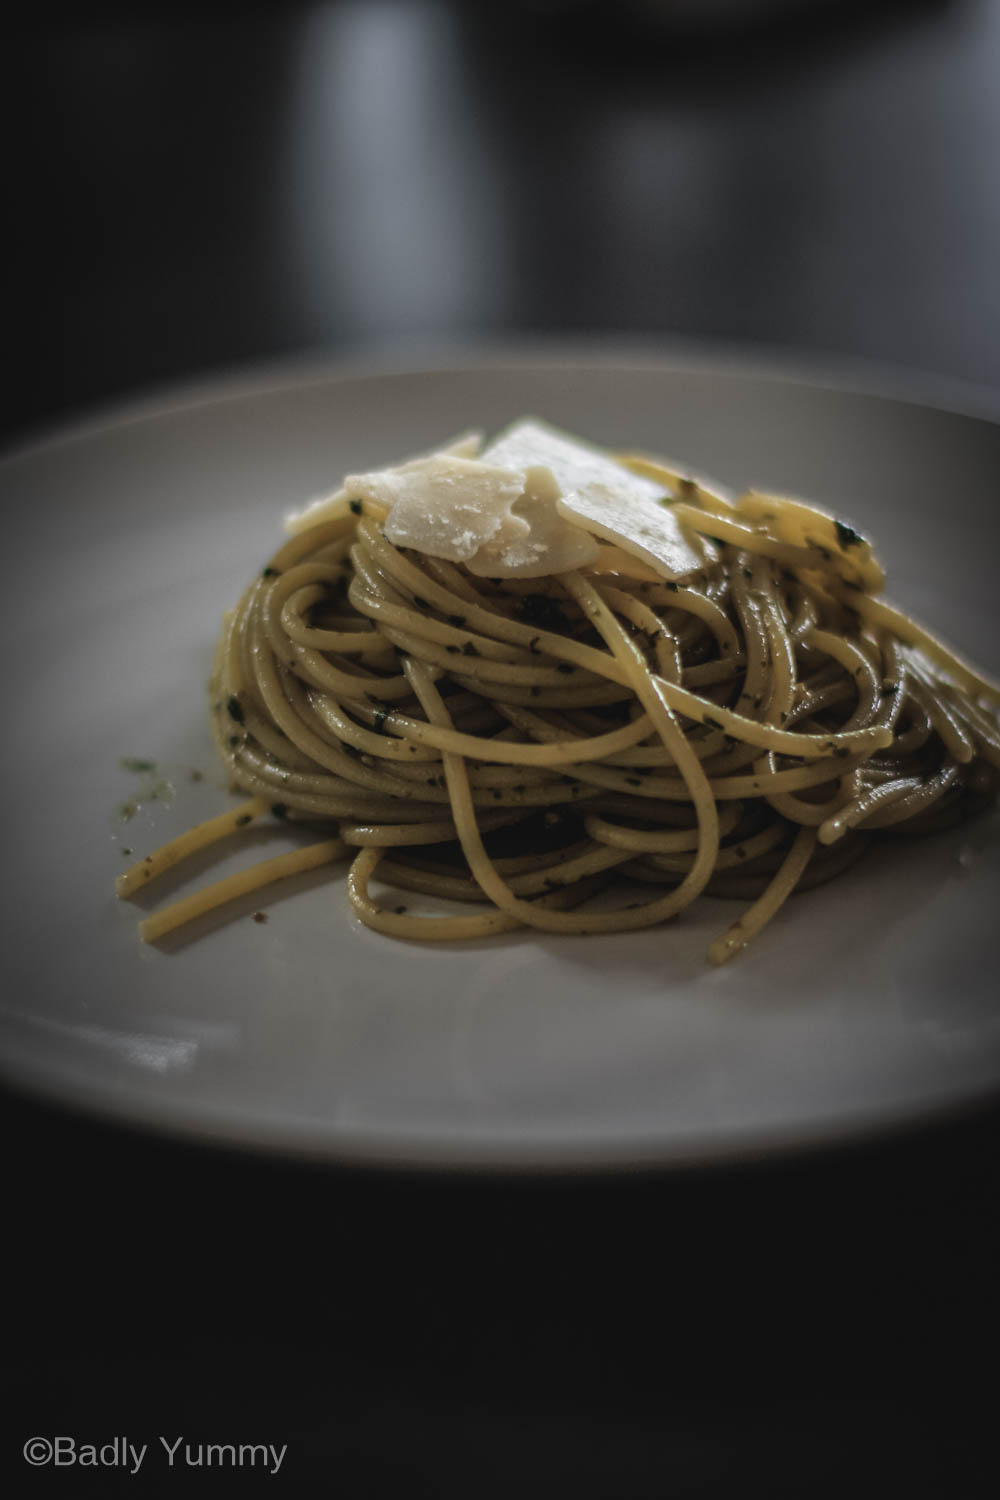 Juicy pesto pasta - Pasta with a lots of pesto sauce on a white plate